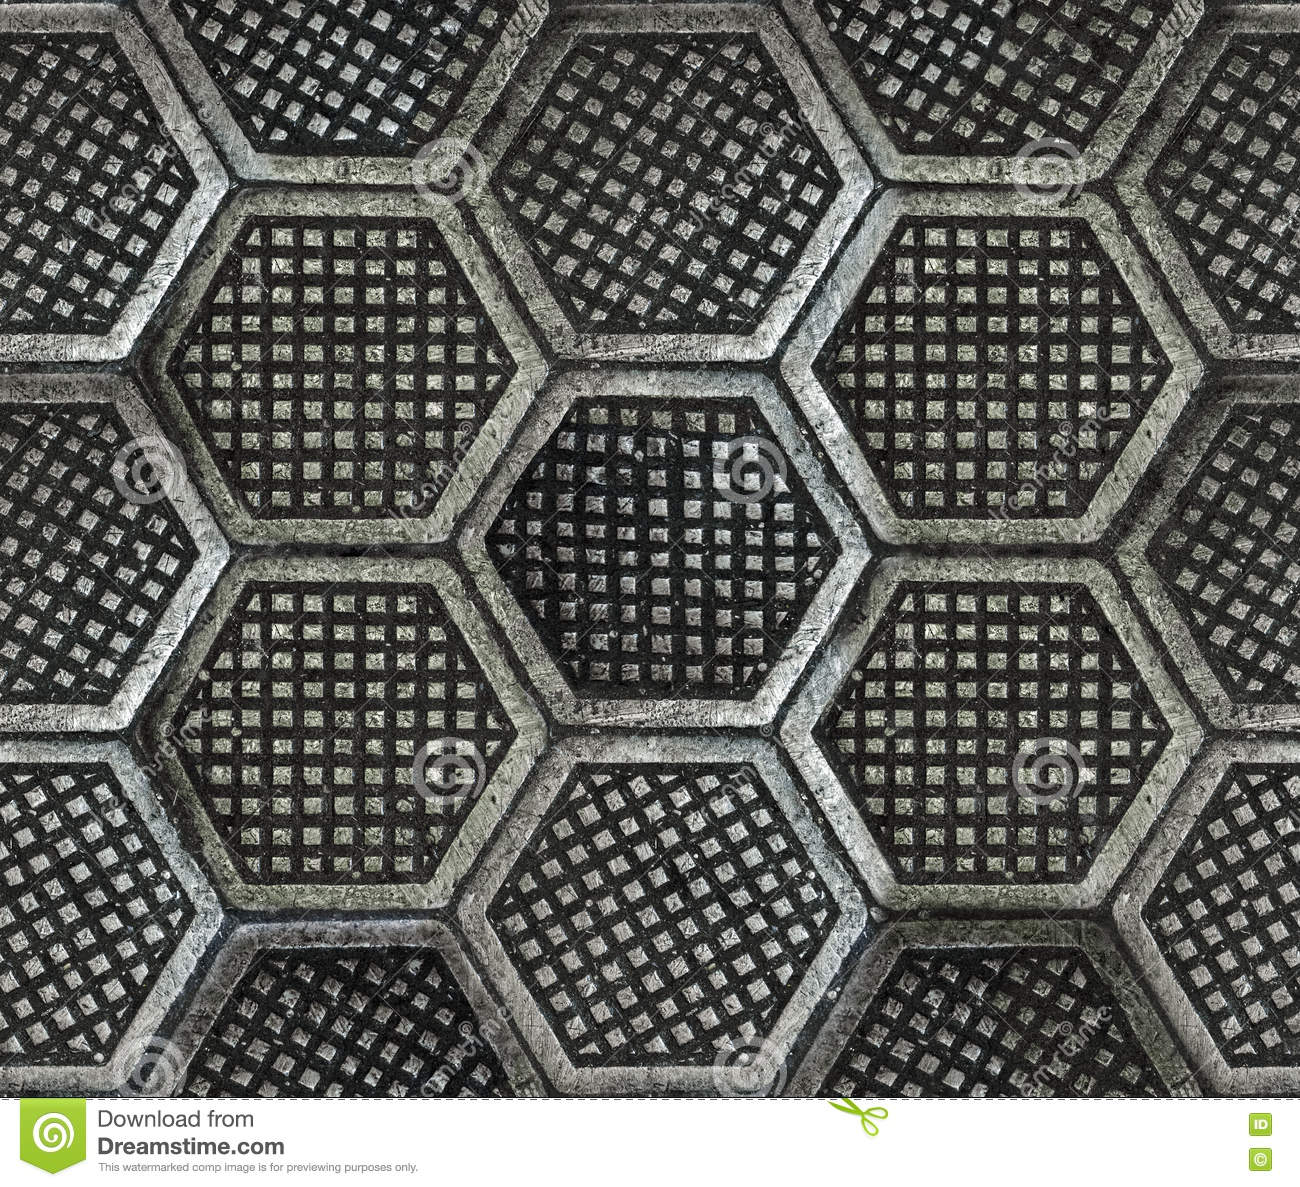 Cast Iron Hexagonal Factory Floor Texture Stock Image